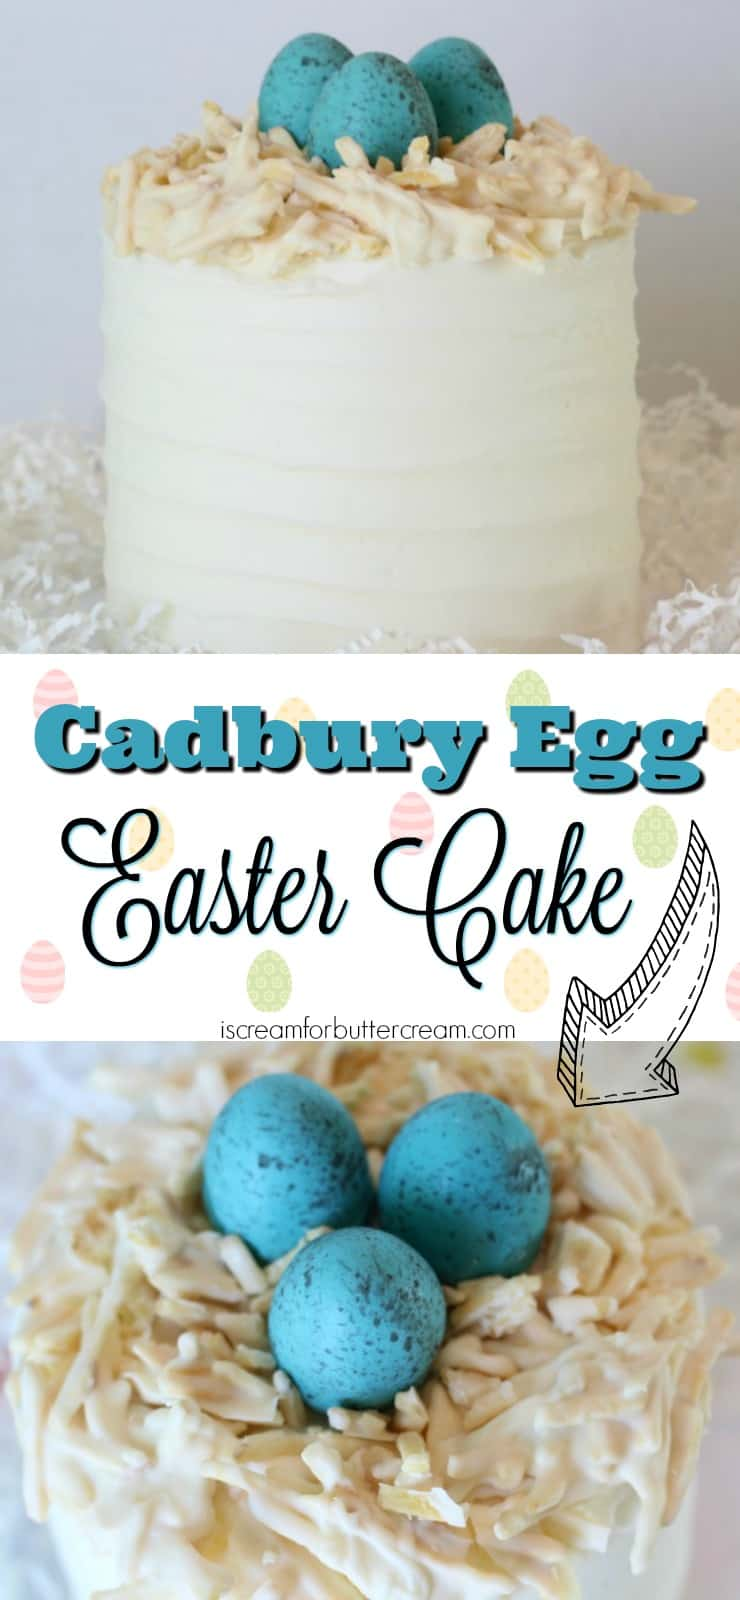 Cadbury Egg Easter Cake Pinterest Graphic